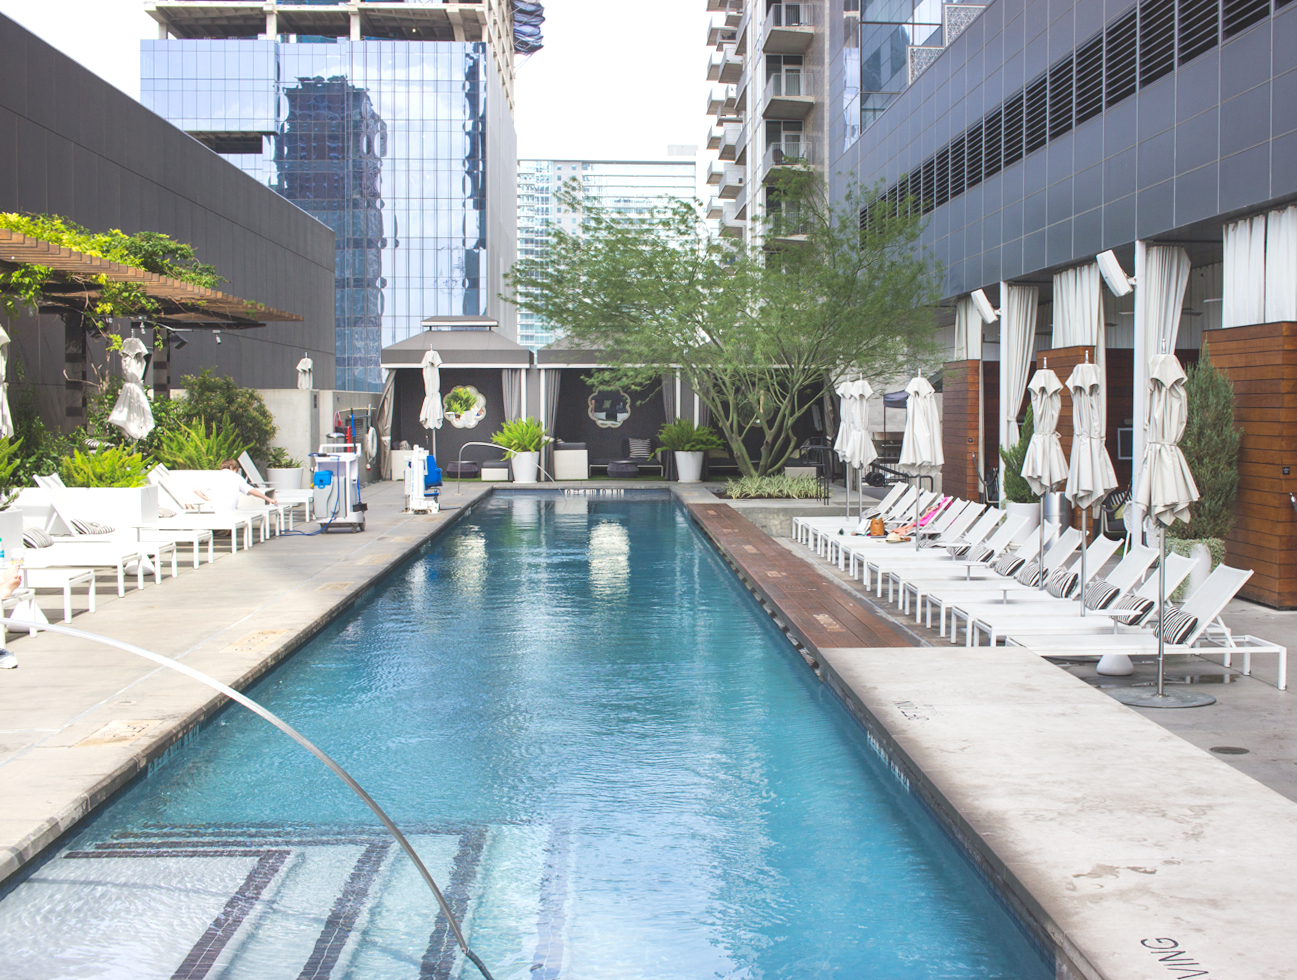 livvyland-blog-olivia-watson-vandi-fair-w-hotel-atx-staycation-stay-cation-austin-texas-fashion-travel-blogger-hotel-reviwe-wet-deck-pool-party-swanky-rooftop-2